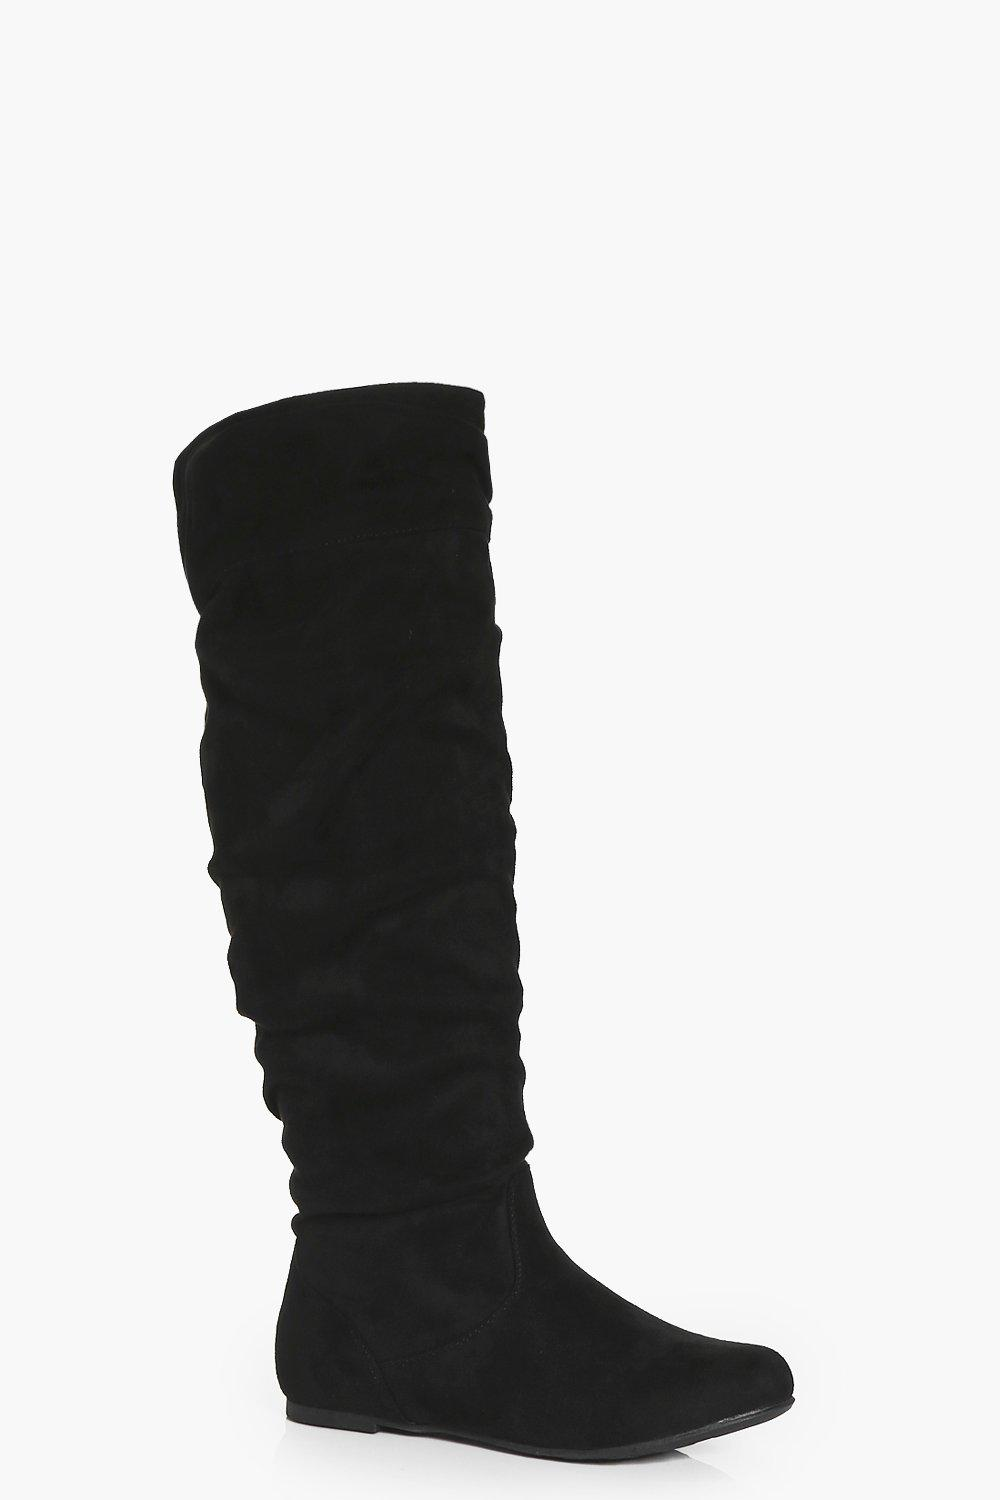 Tegan Ruched Knee High Boot